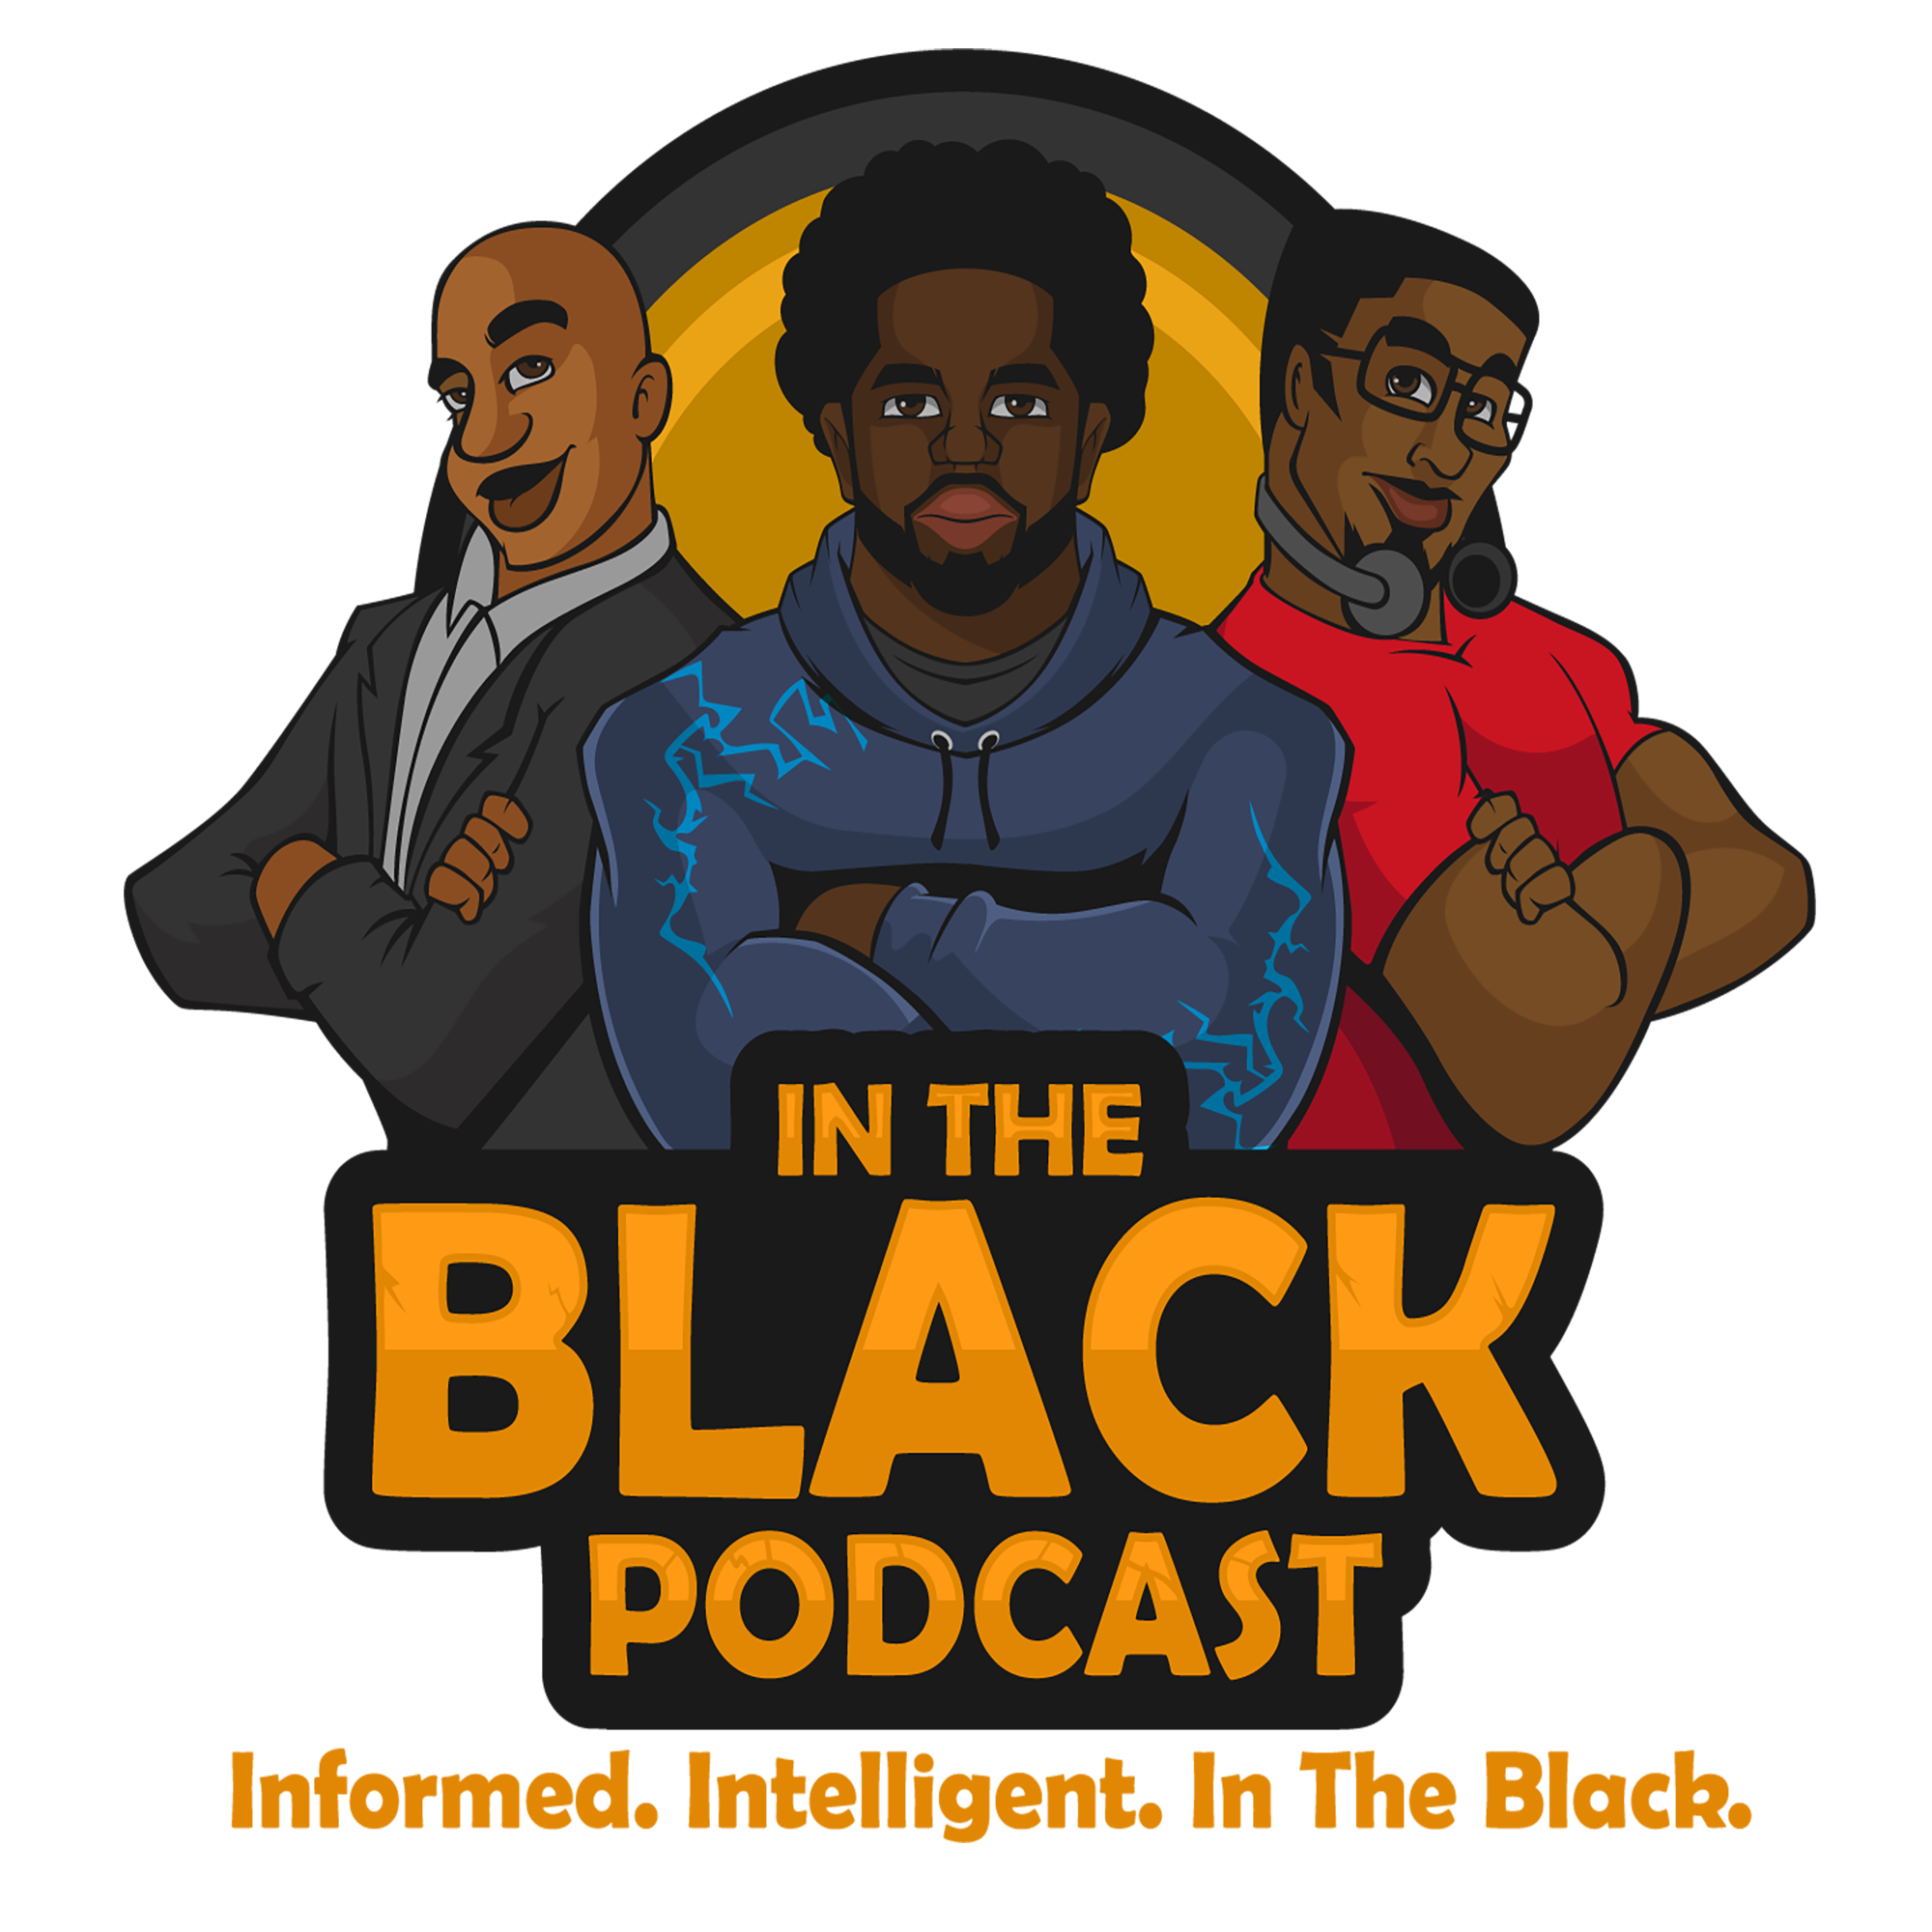 Lil Boosie Gets Prostitutes For His 13 Year Old Son, Budgeting For Dating, And How Is COVID-19 Affecting Movies And TV | ITBP S4E28 show art